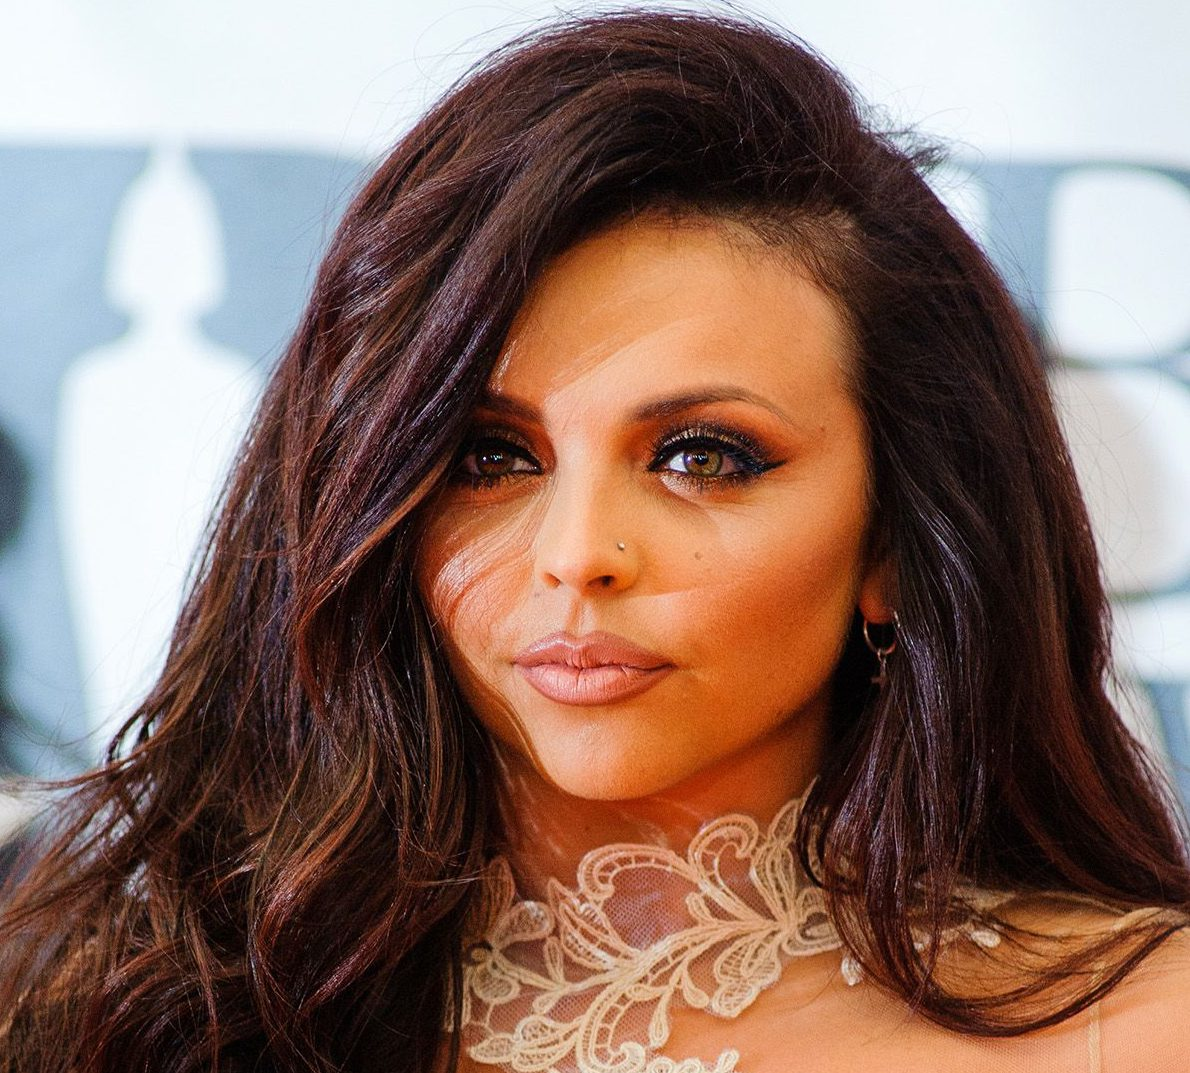 Jesy Nelson and Chris Clark's rumoured split fuelled by 'different' lifestyles: 'It was never going to work'